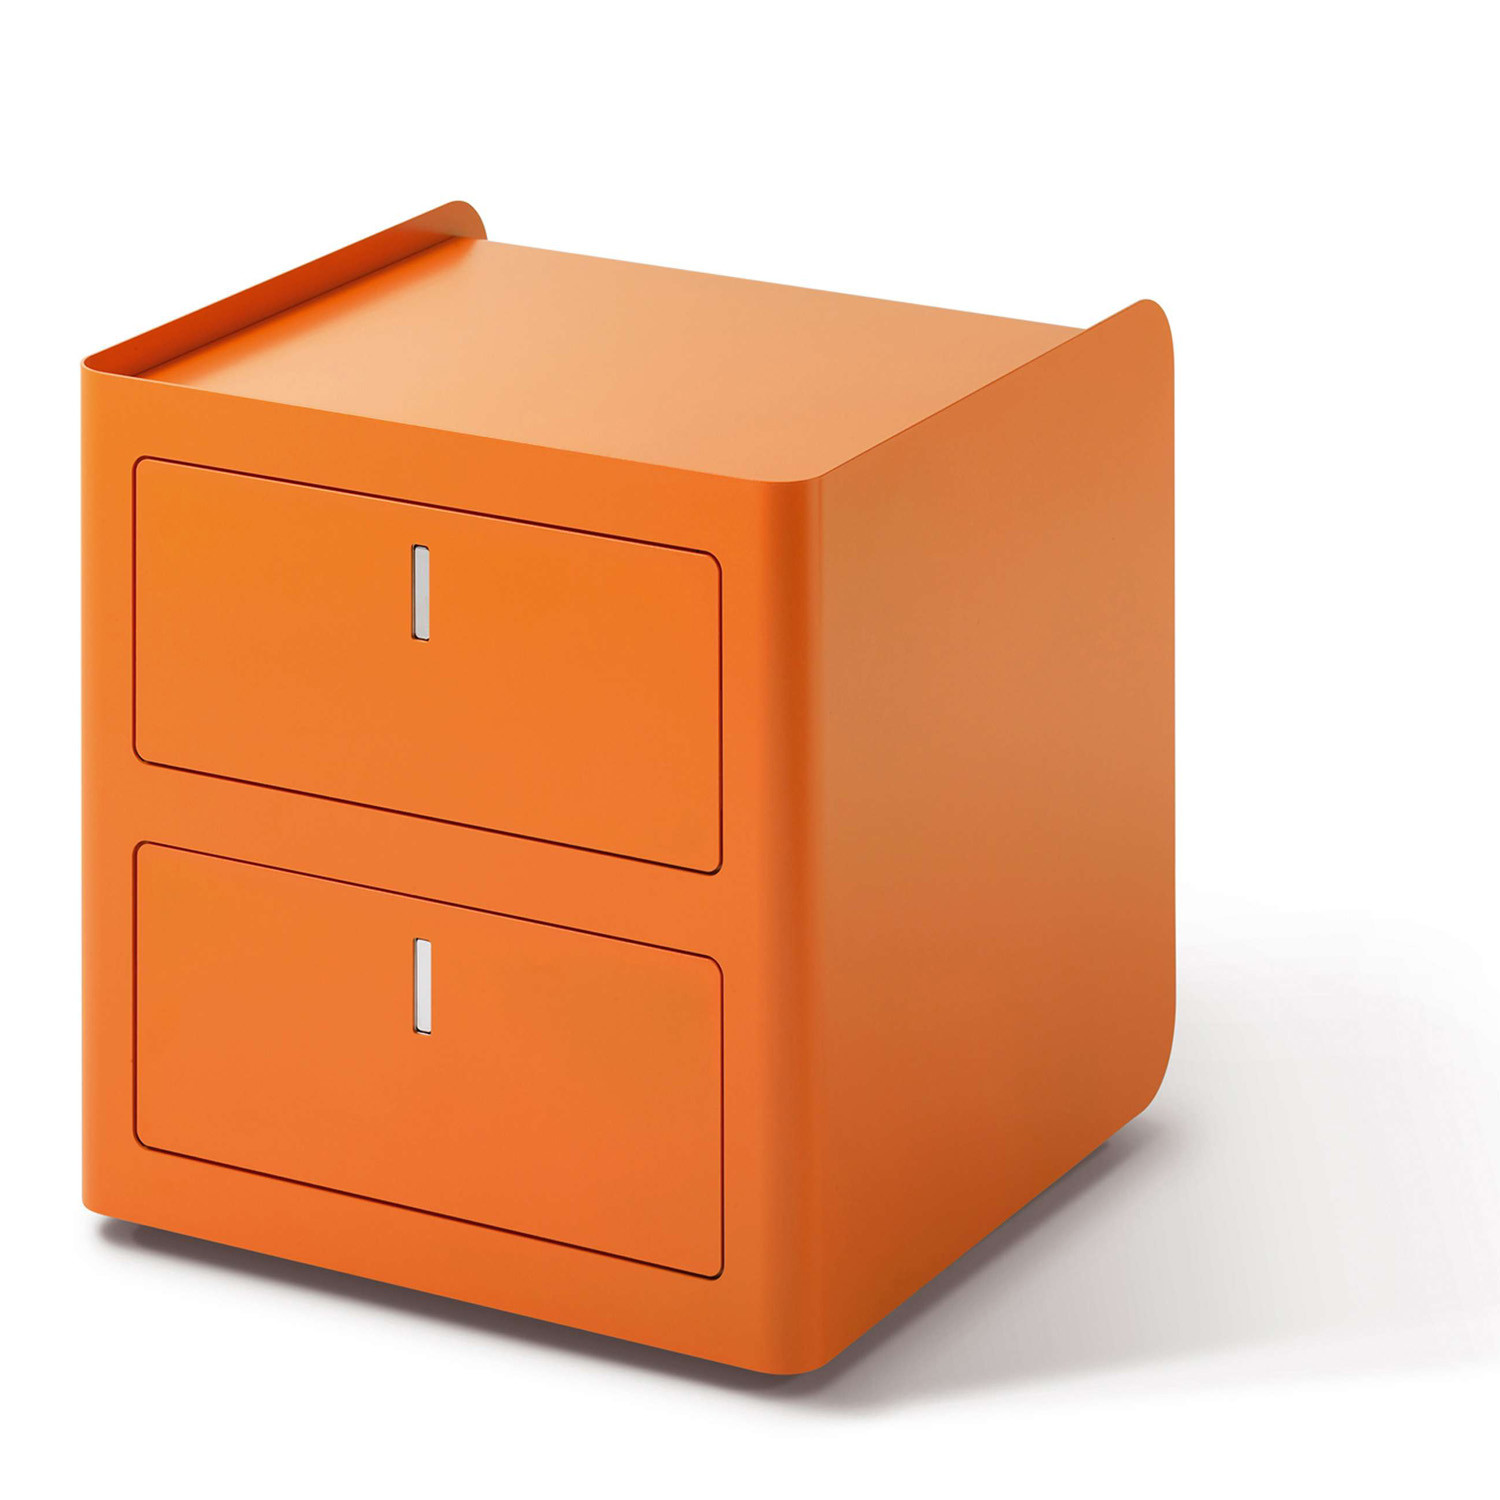 CBox Desk Pedestal in orange